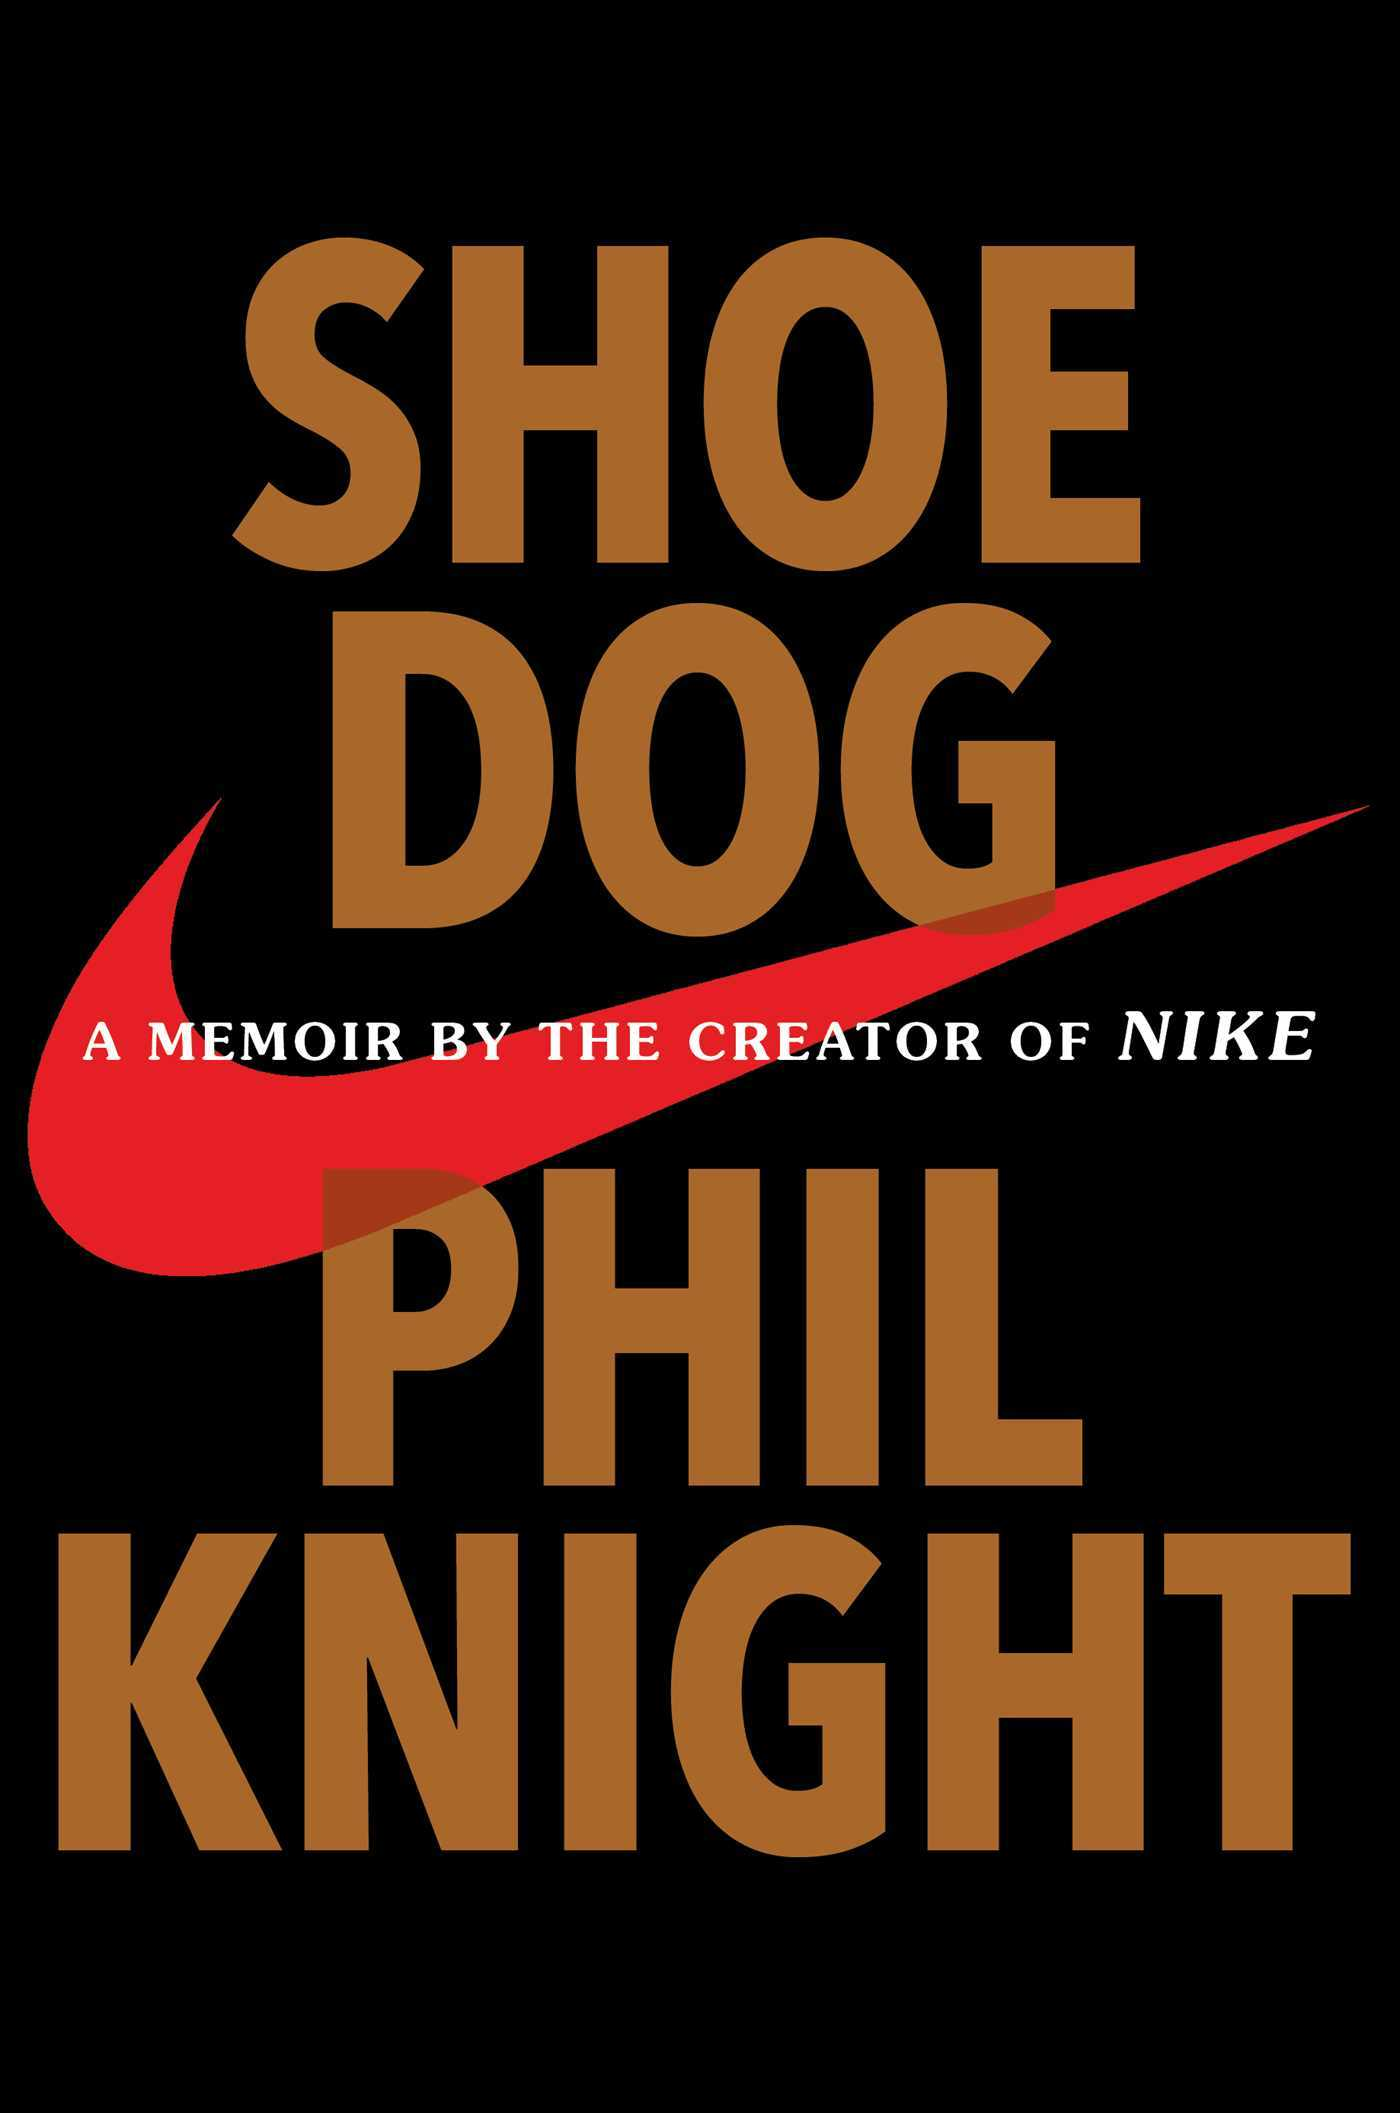 Phil Knight Shoe Dog A Memoir by the Creator of